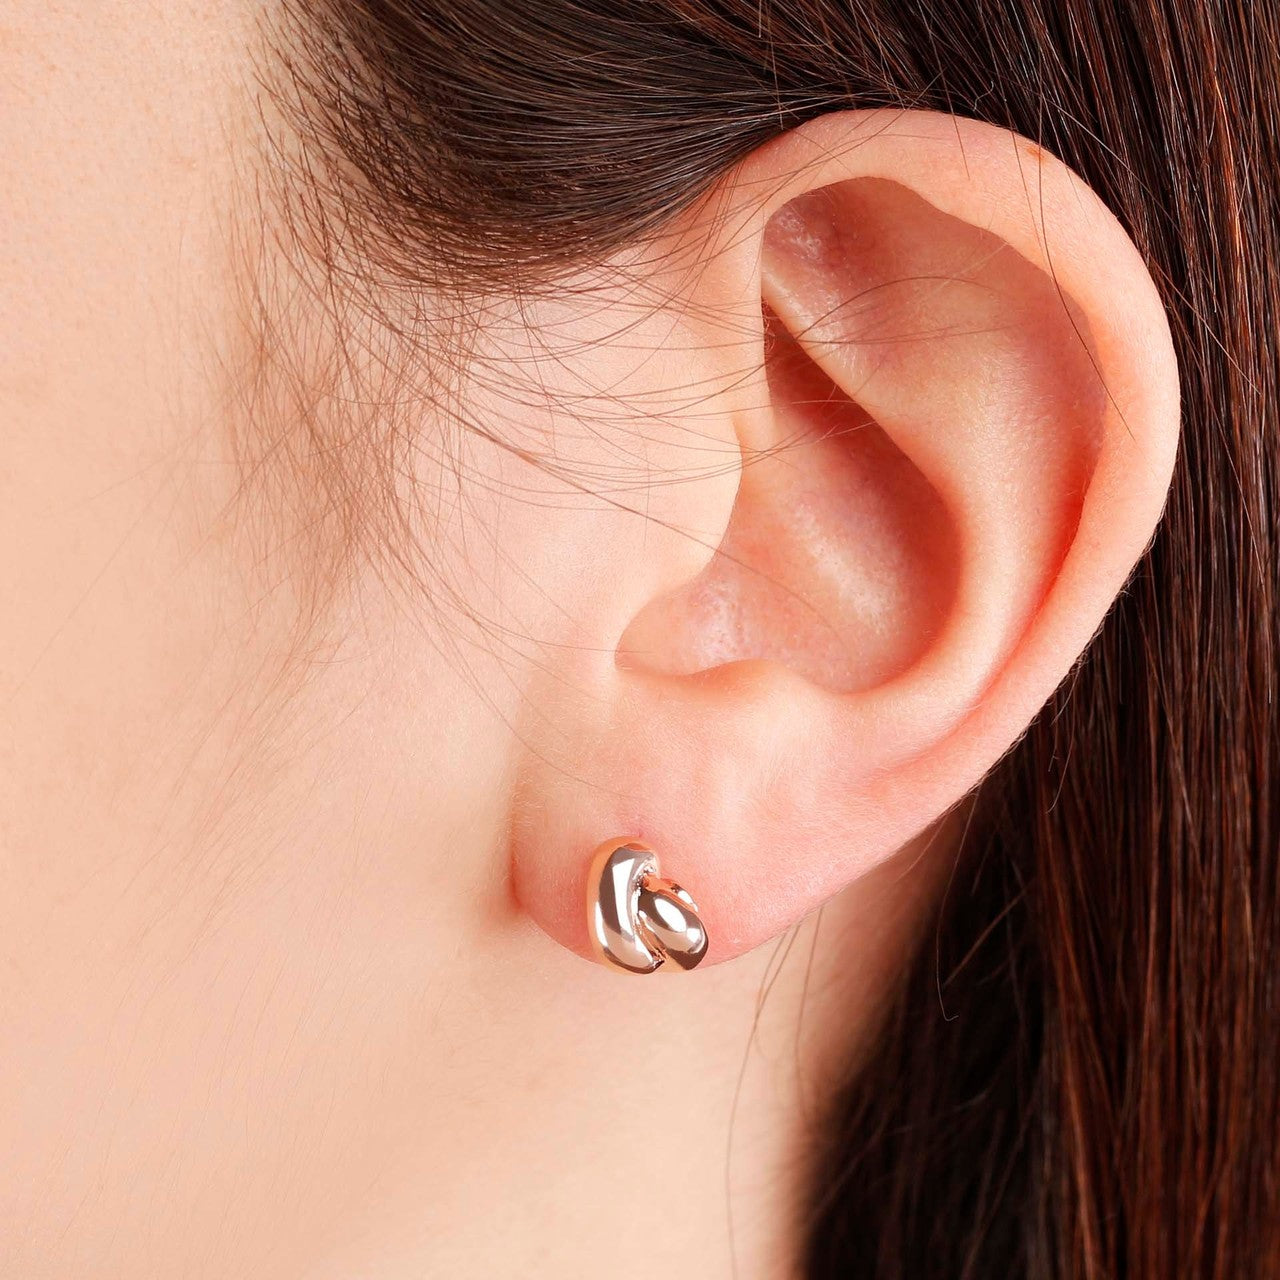 worn Knot stud earrings